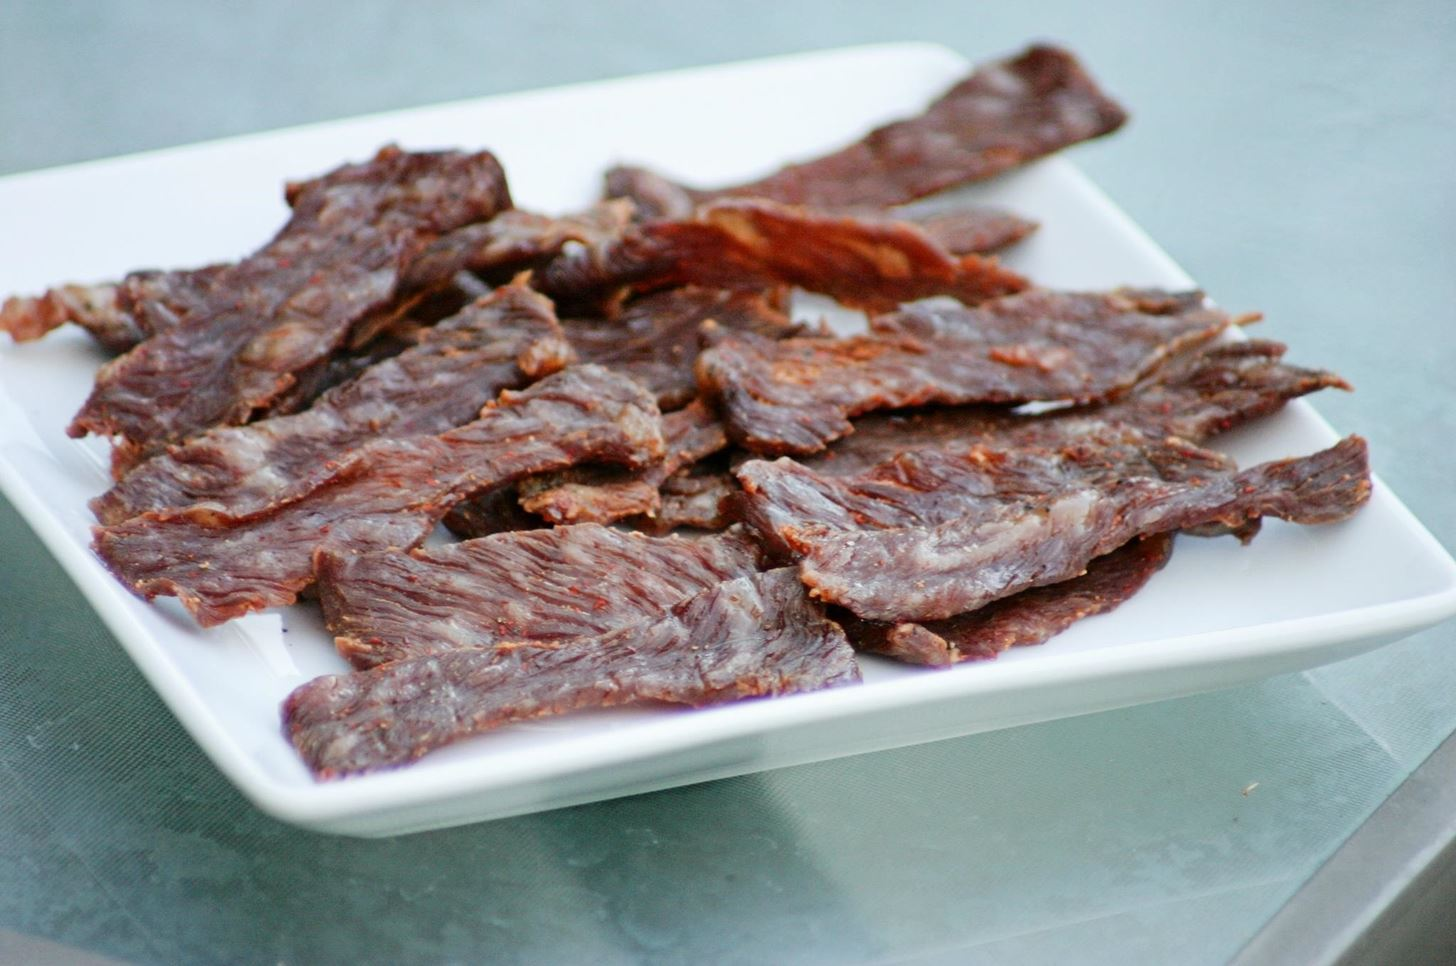 How to Make Homemade Jerky Without a Dehydrator